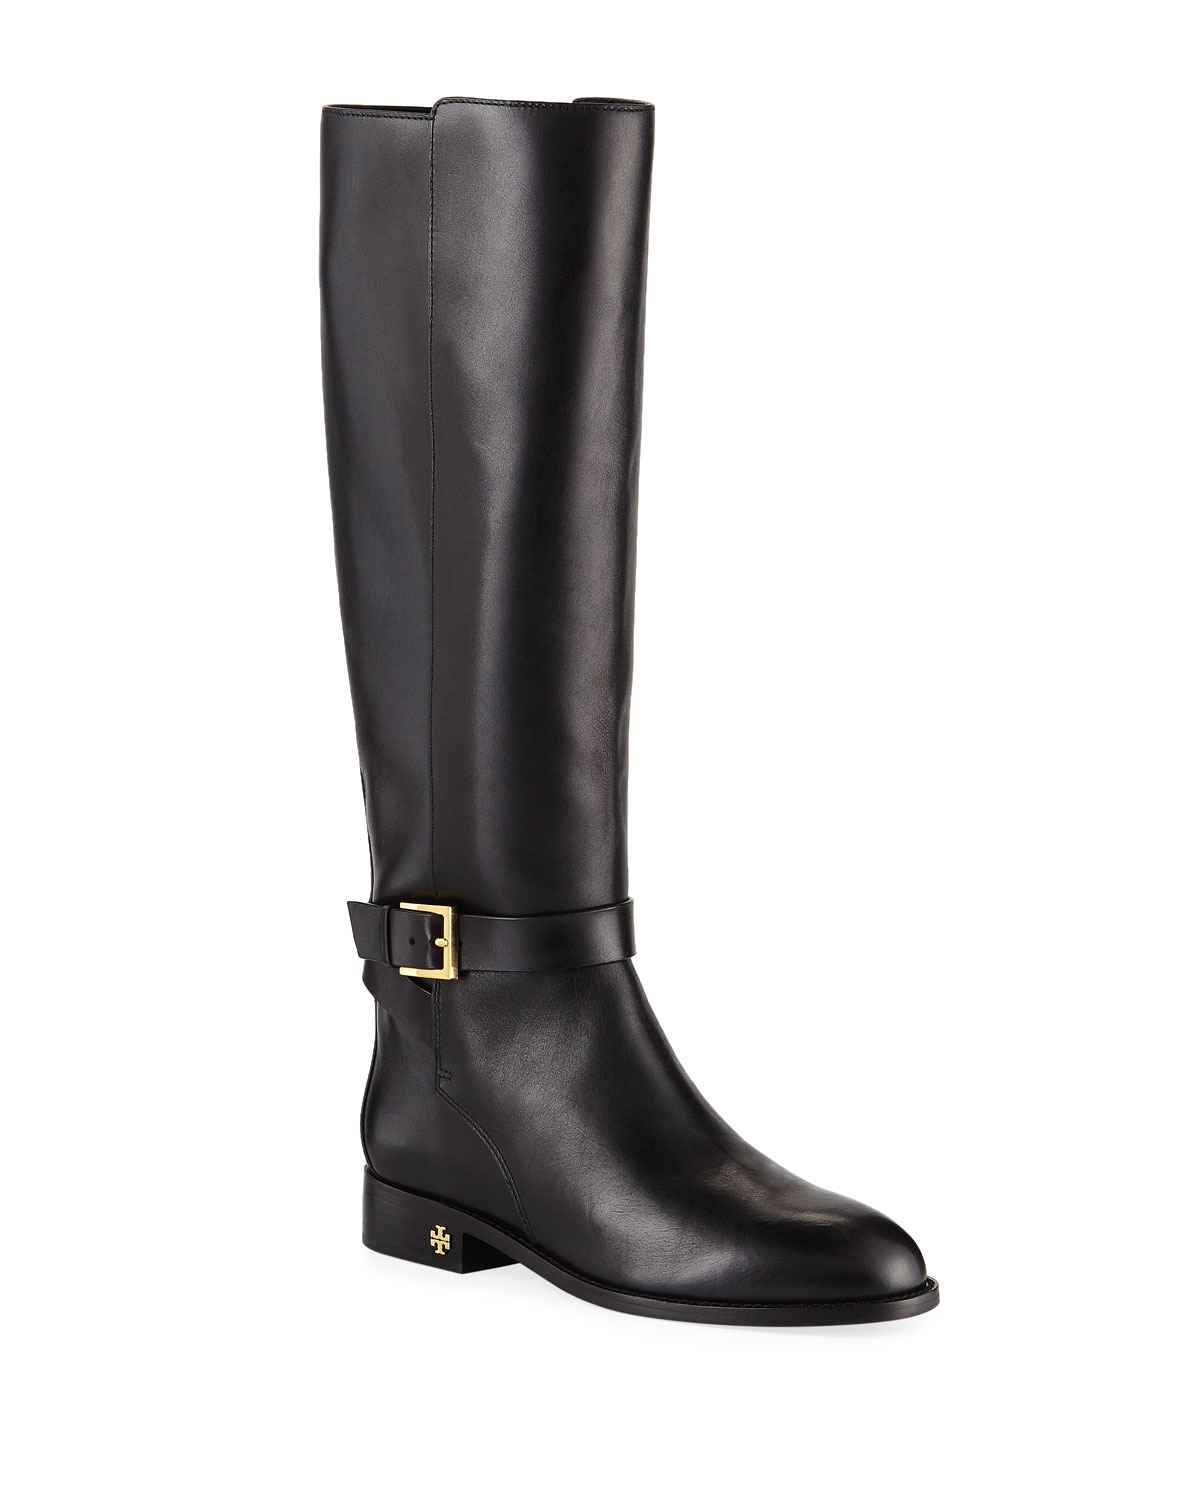 3bfdfad2ba2d Tory Burch Brooke Leather Knee Boots